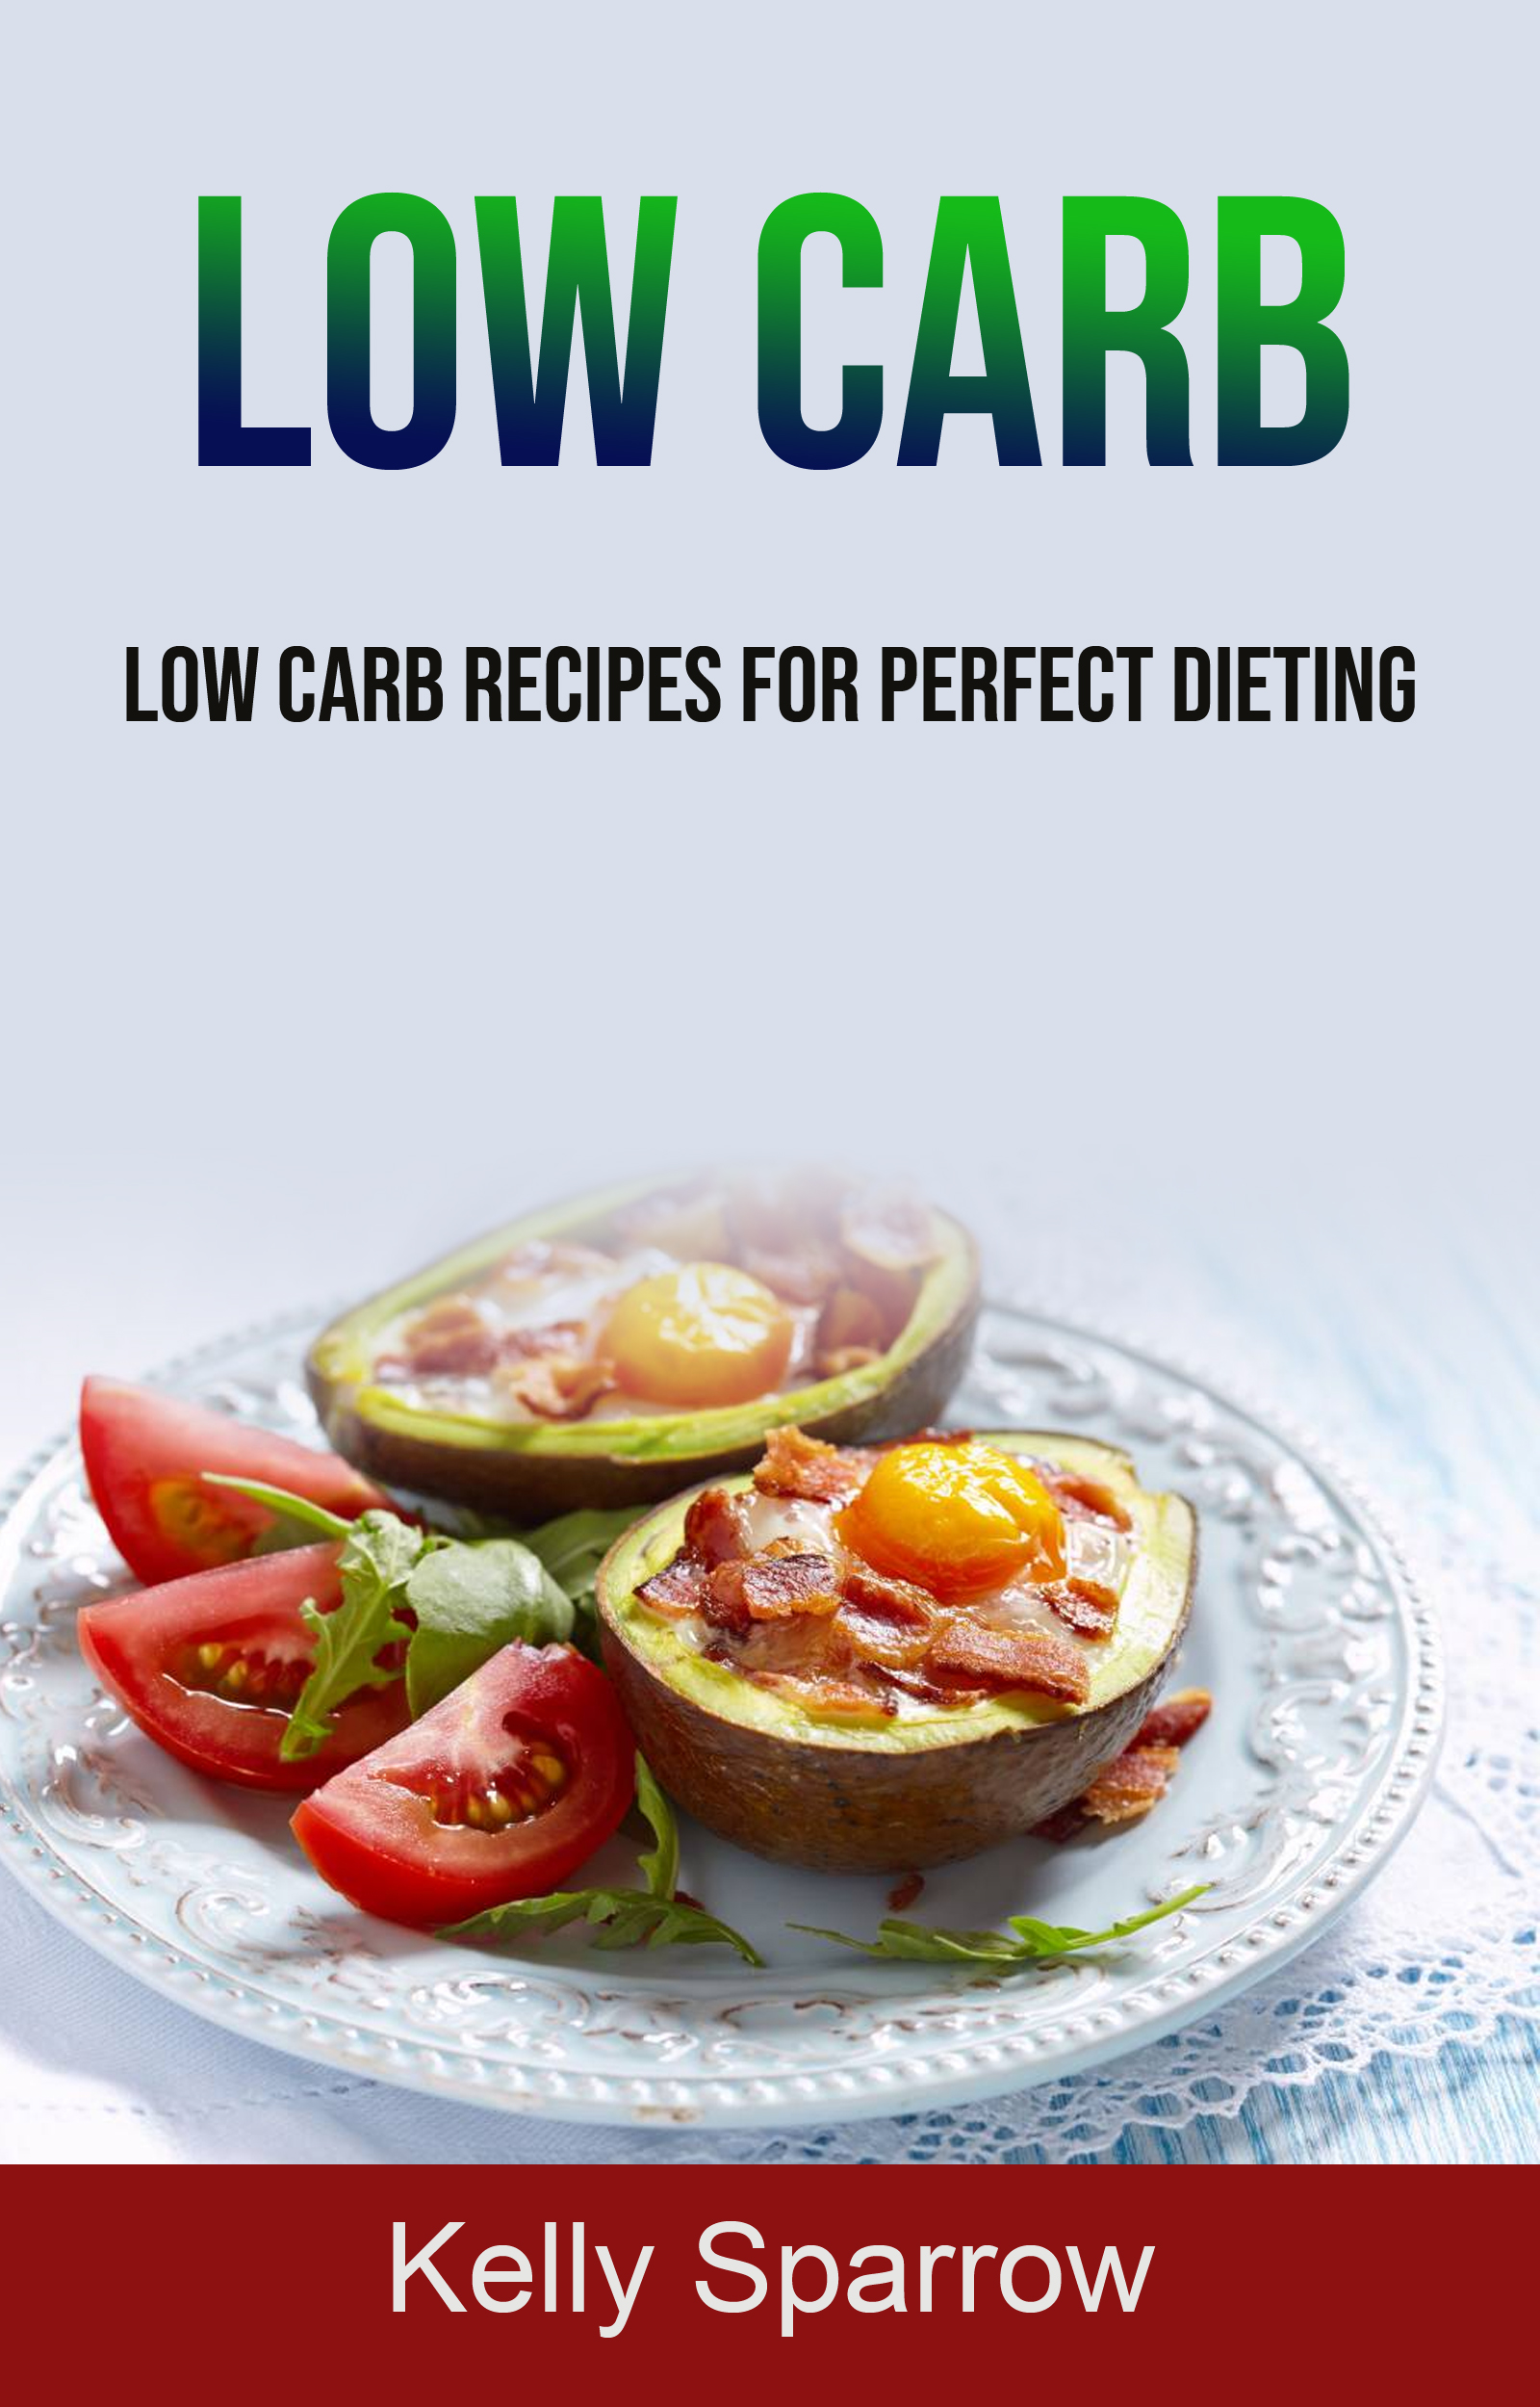 Low carb: low carb recipes for perfect dieting